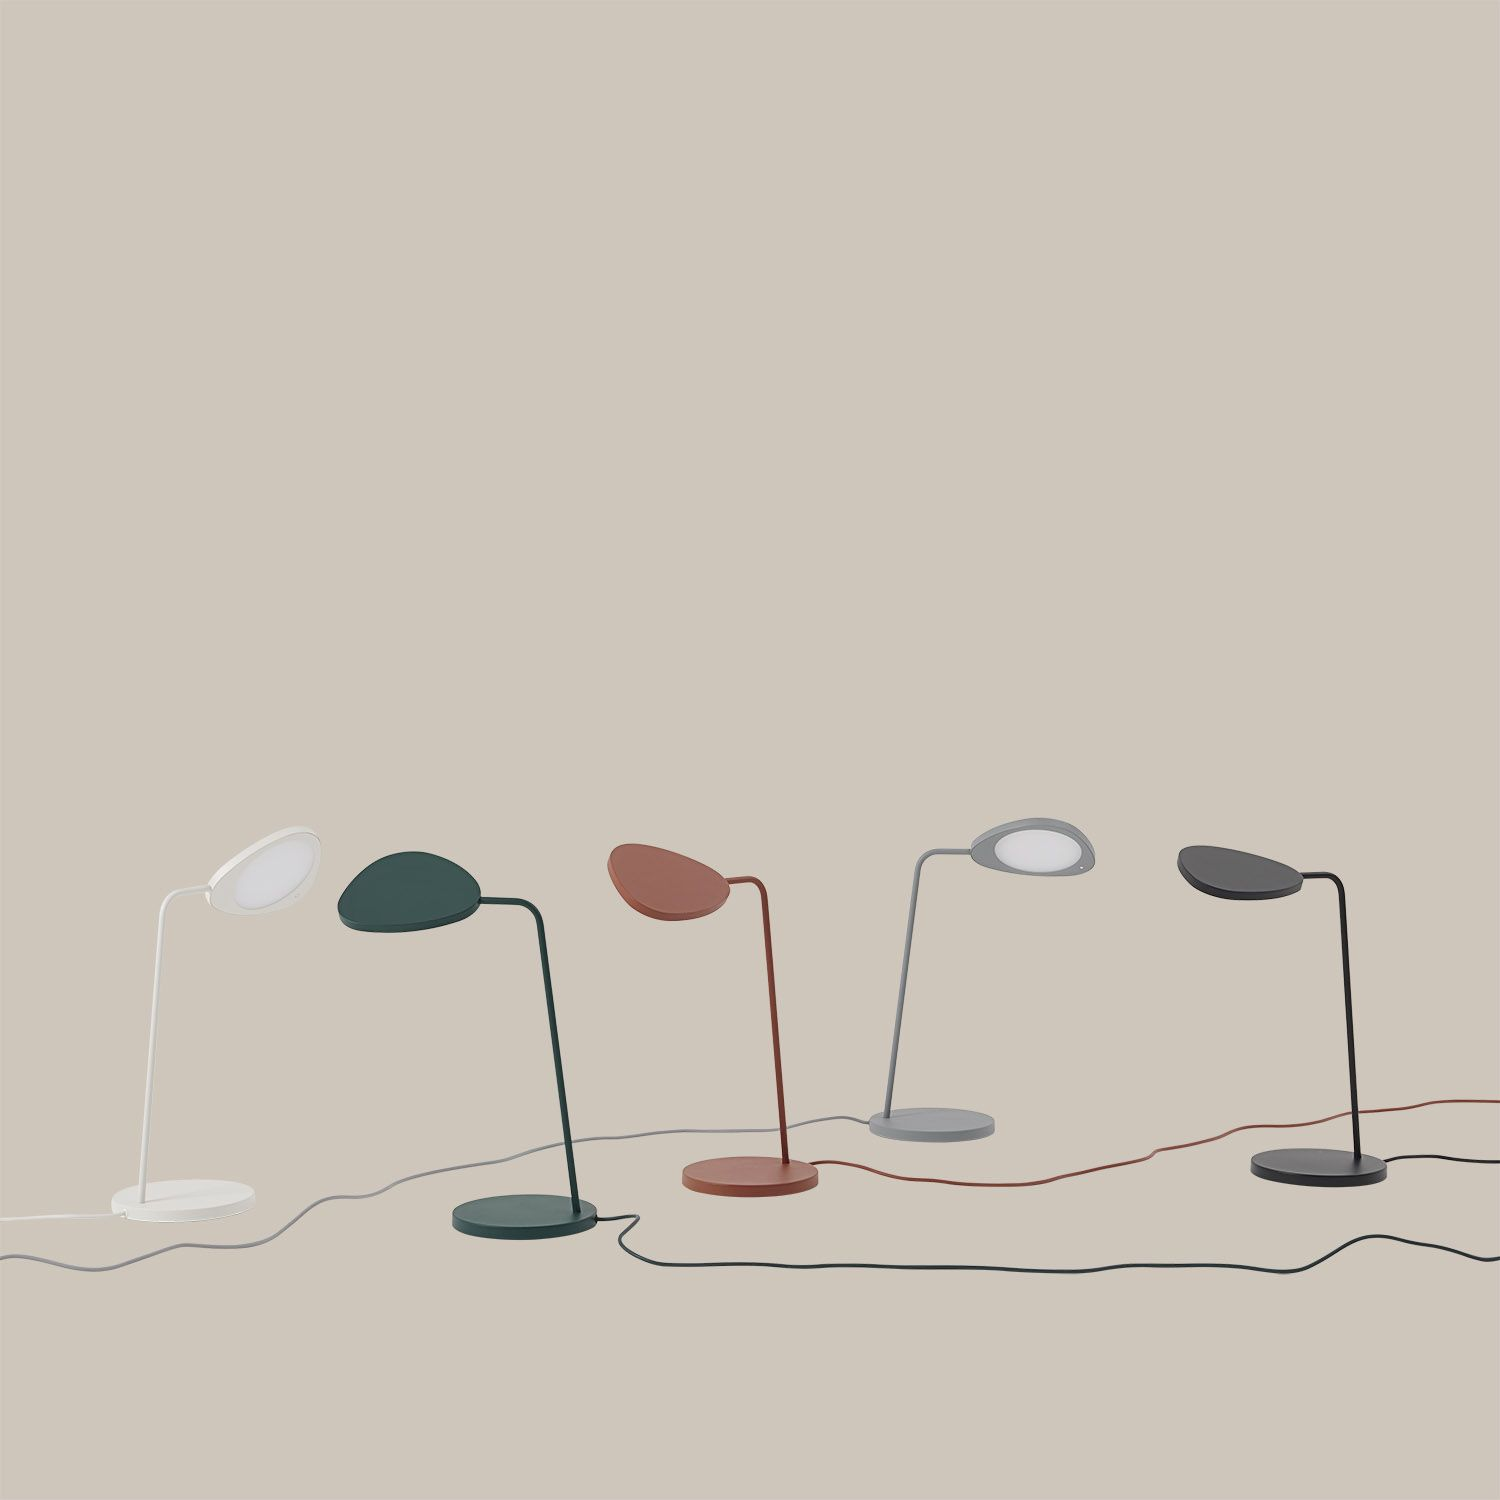 Colorful And Modern Home Office Table Lamp Decor From Muuto A Sleek And Contemporary Addition To Any Home Or Professional Sp In 2020 Leaf Table Lamp Table Lamp Office